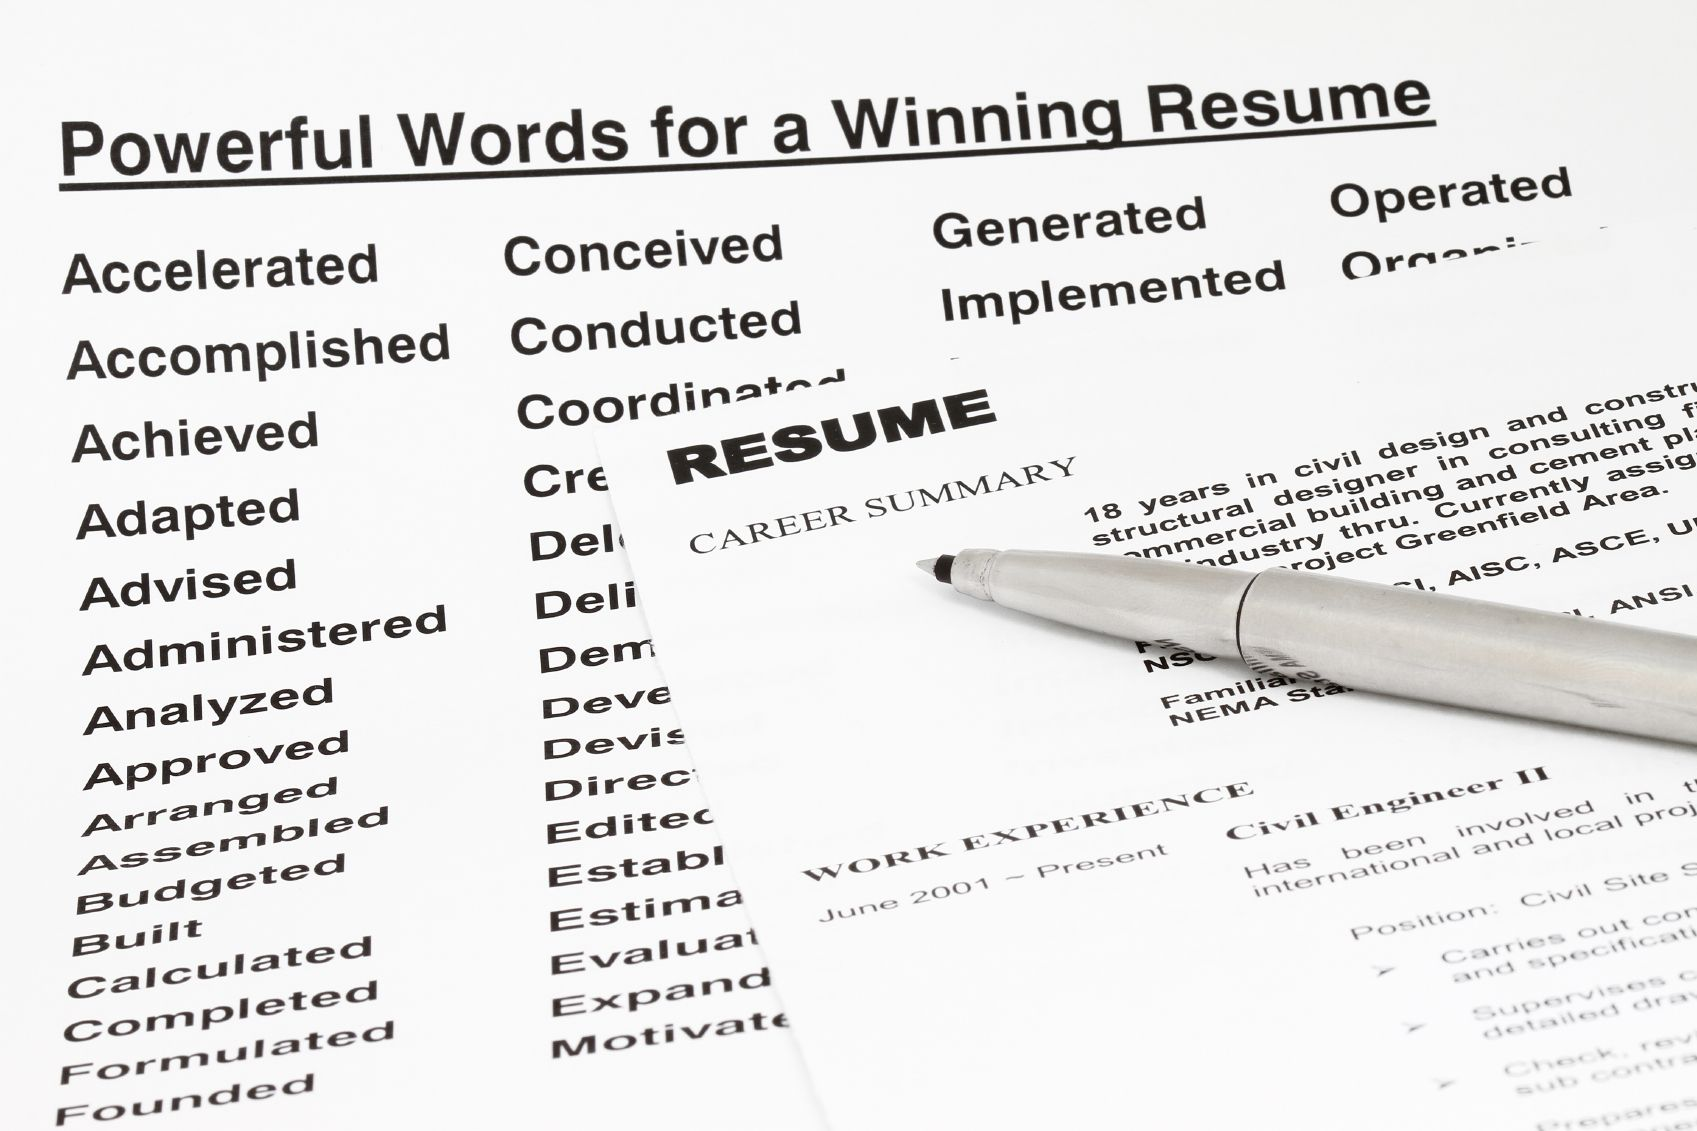 key words to use on a resumes